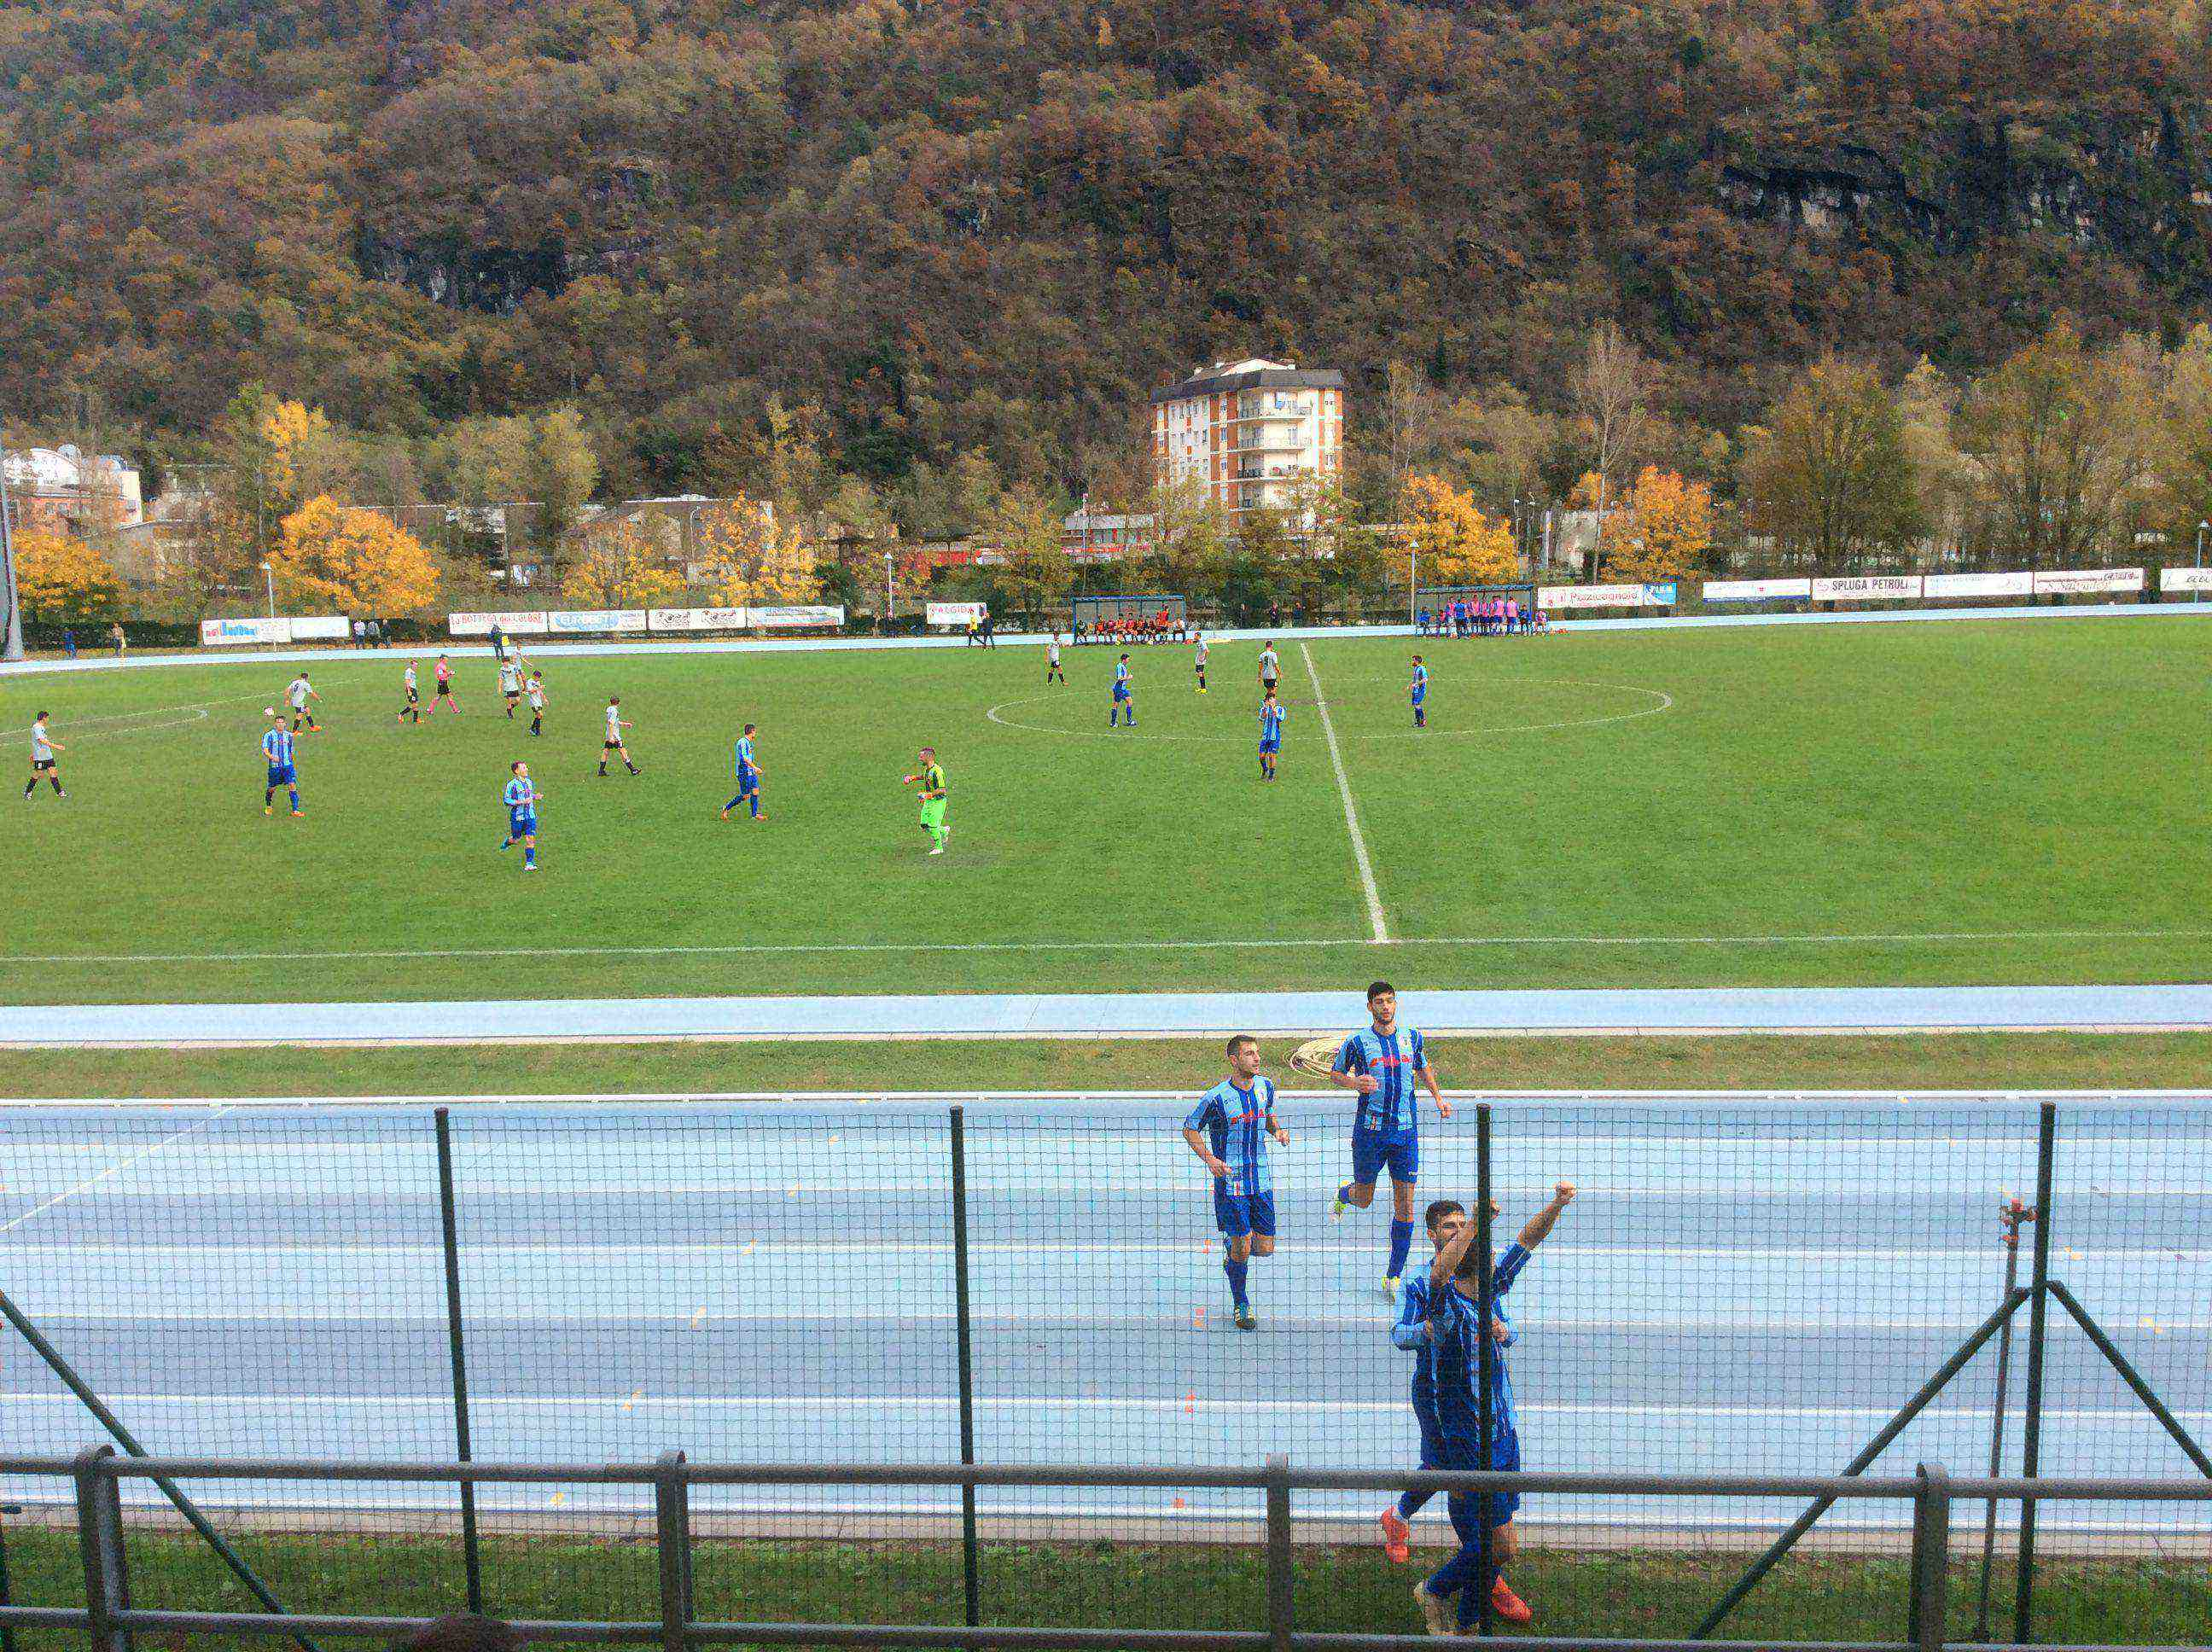 1° CATEGORIA: CHIAVENNESE- OLYMPIC MORBEGNO 3-3